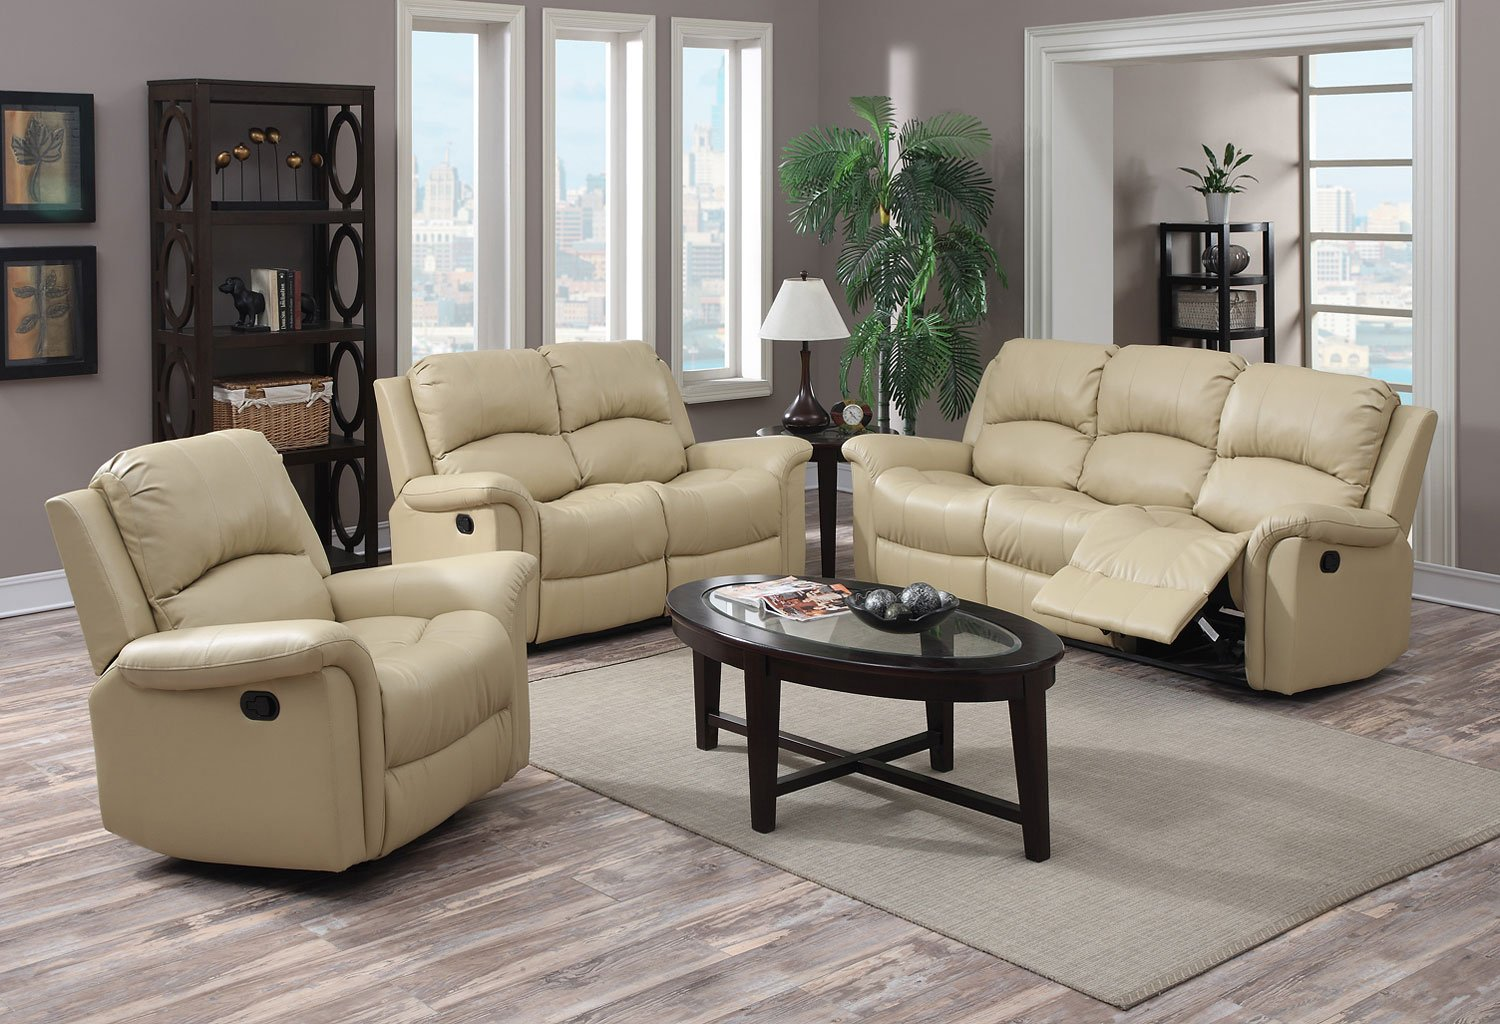 G795 Reclining Living Room Set Beige Living Room Sets